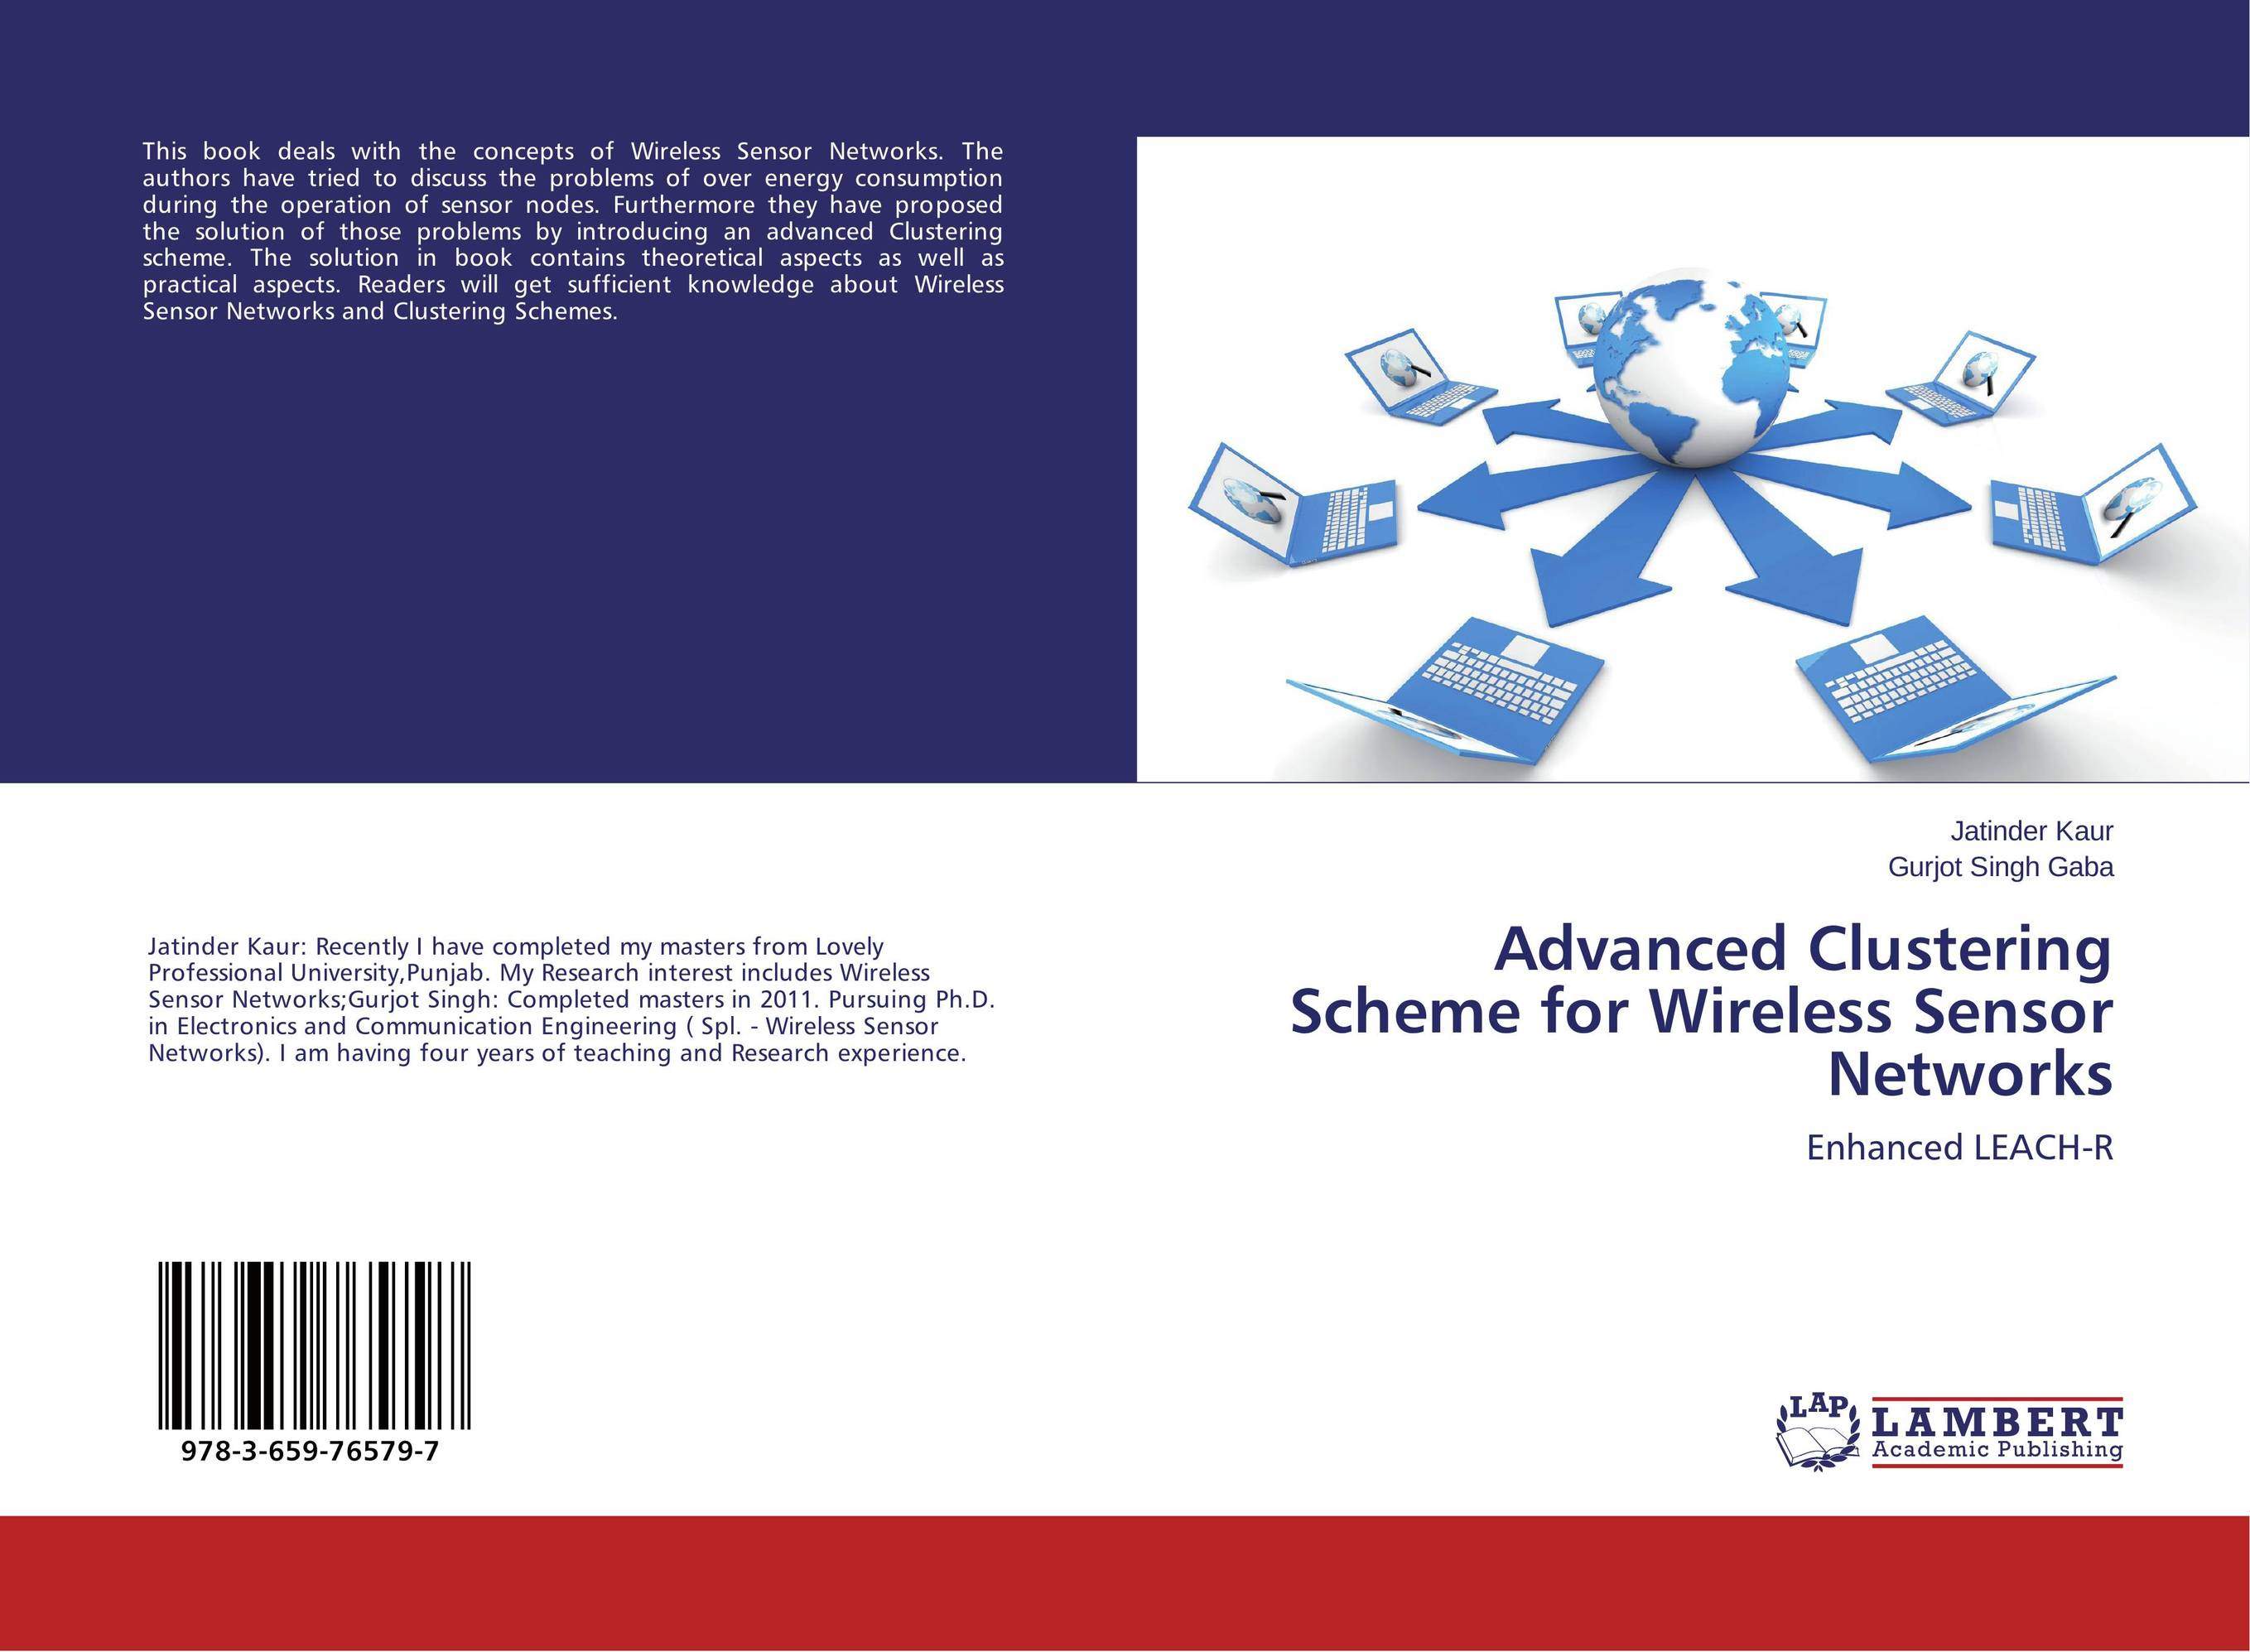 Advanced Clustering Scheme for Wireless Sensor Networks evaluation of lte advanced networks